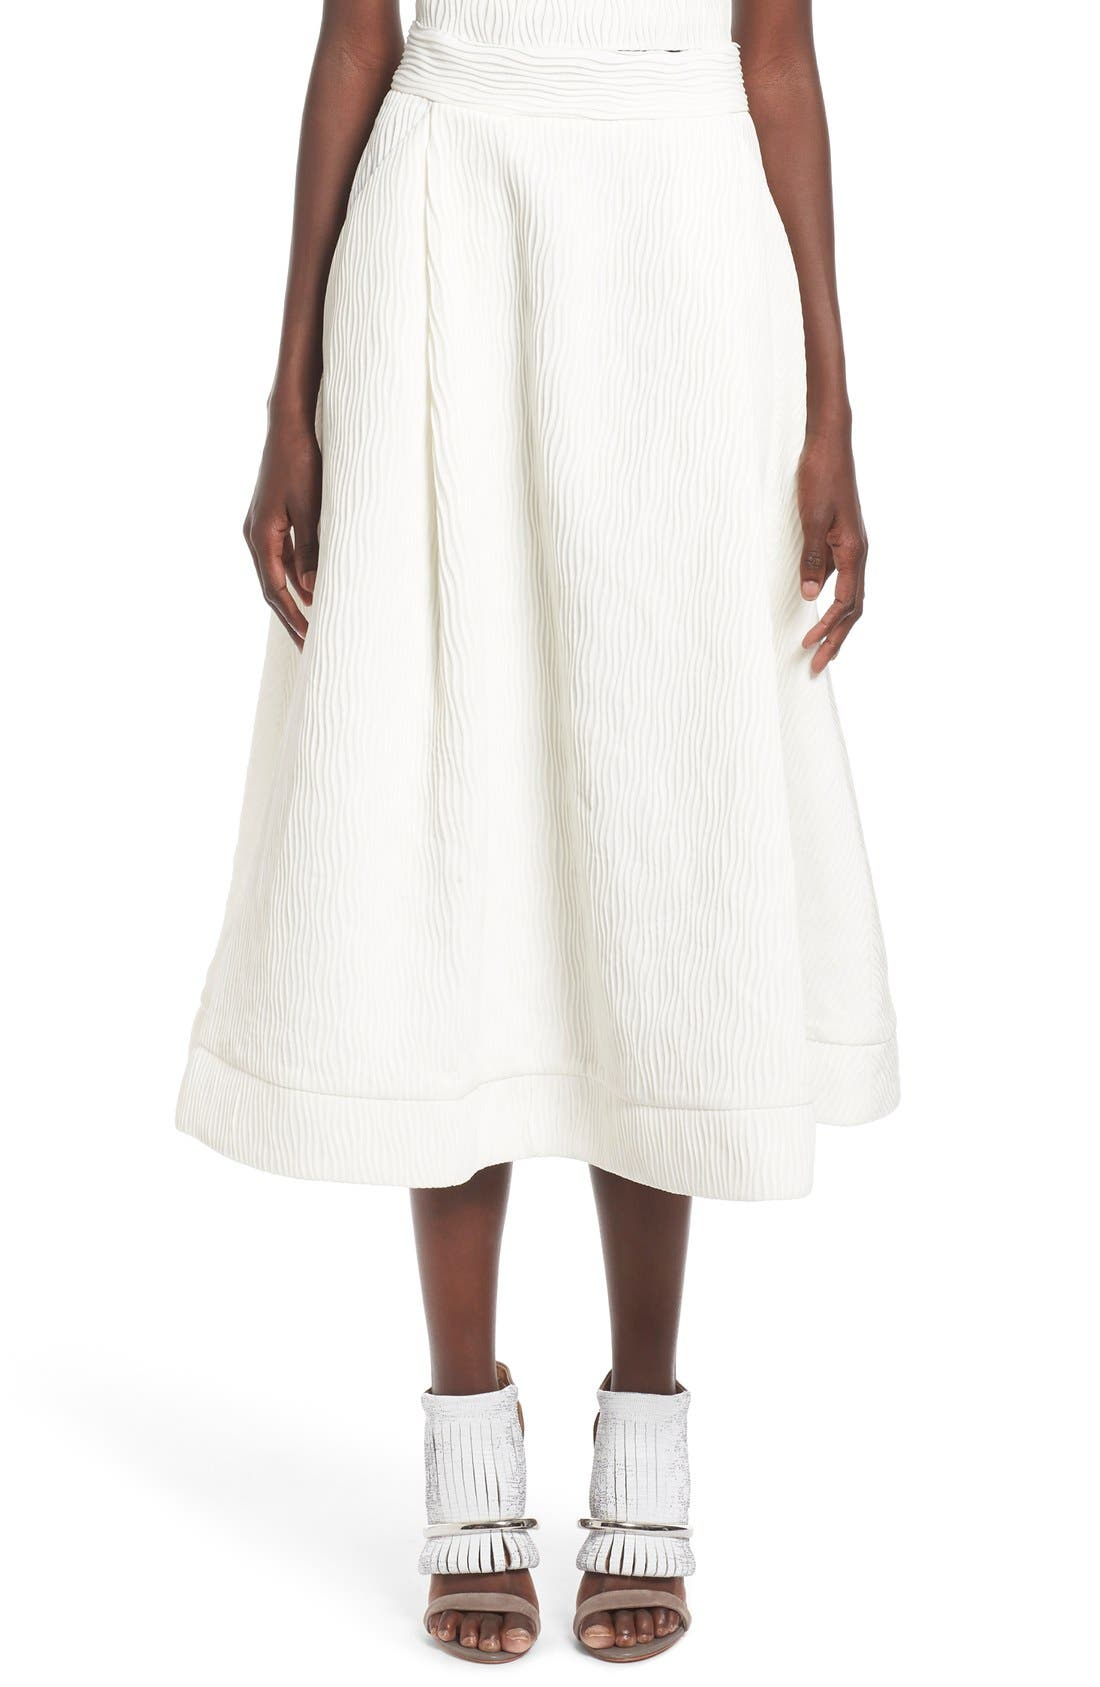 Alternate Image 1 Selected - C/MEO Collective 'Stay Close' Wavy Pleat Midi Skirt